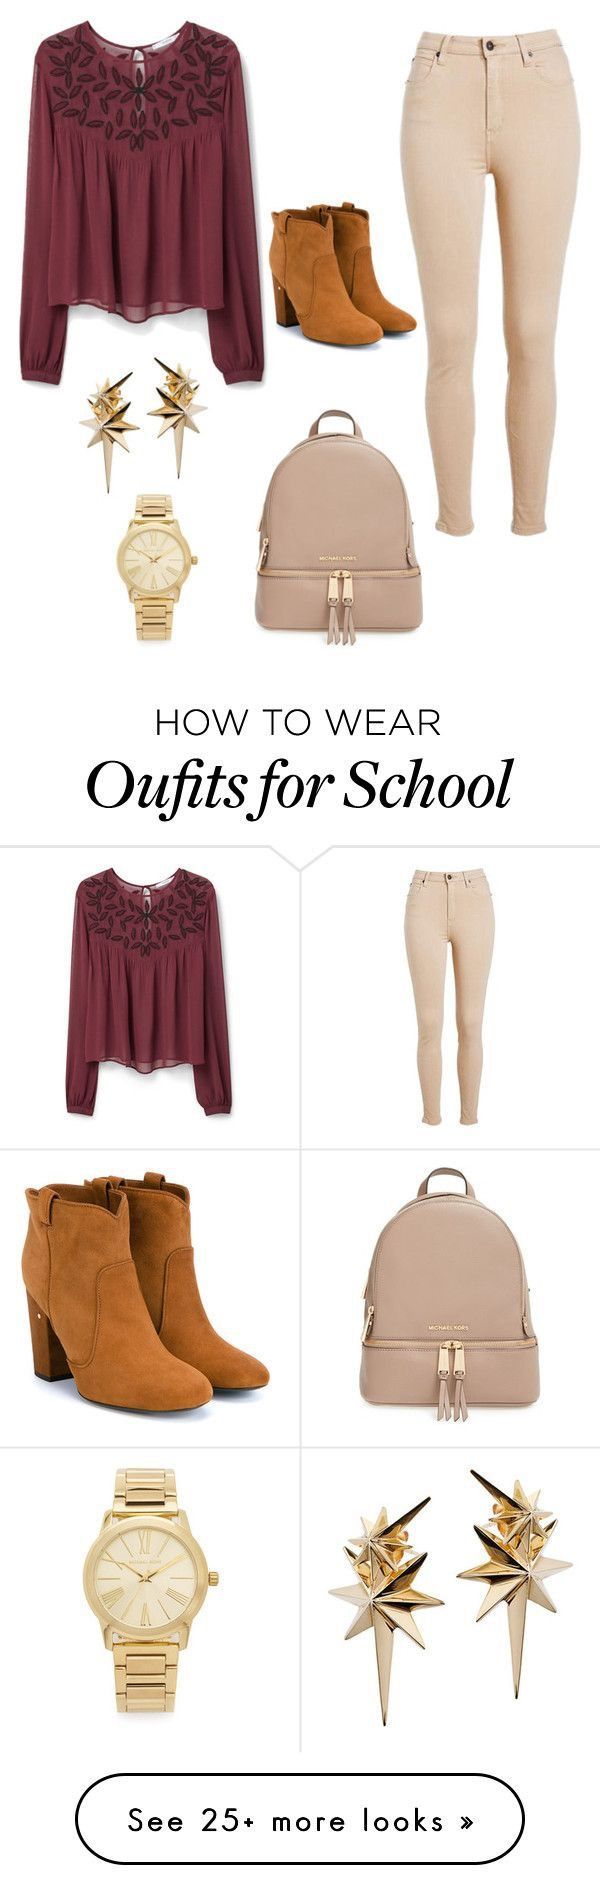 How to wear outfits for school